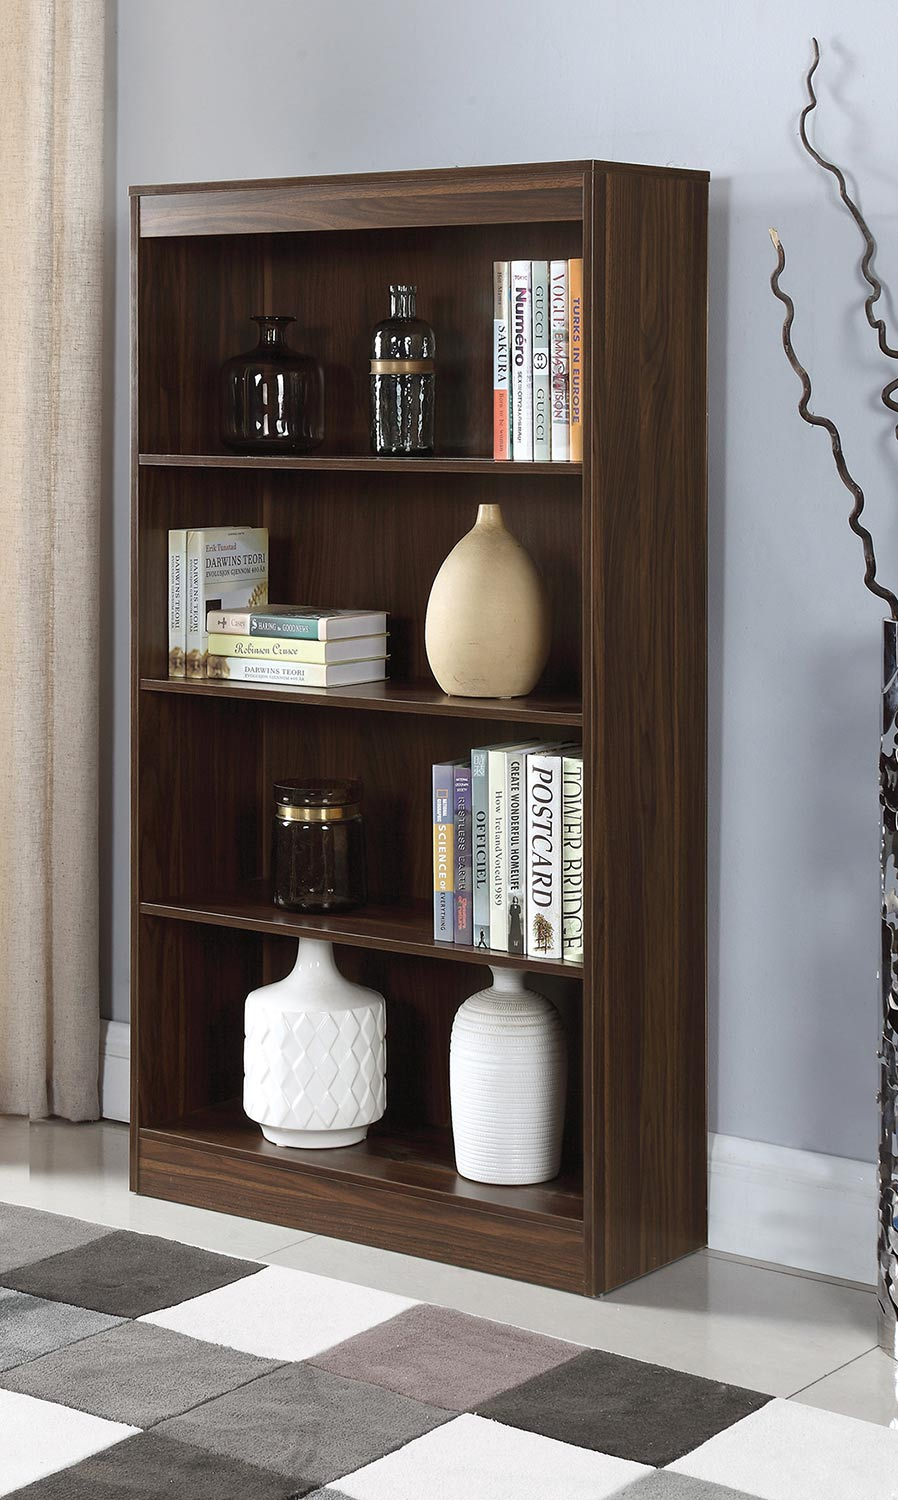 Coaster 801807 Bookcase - Dark Walnut